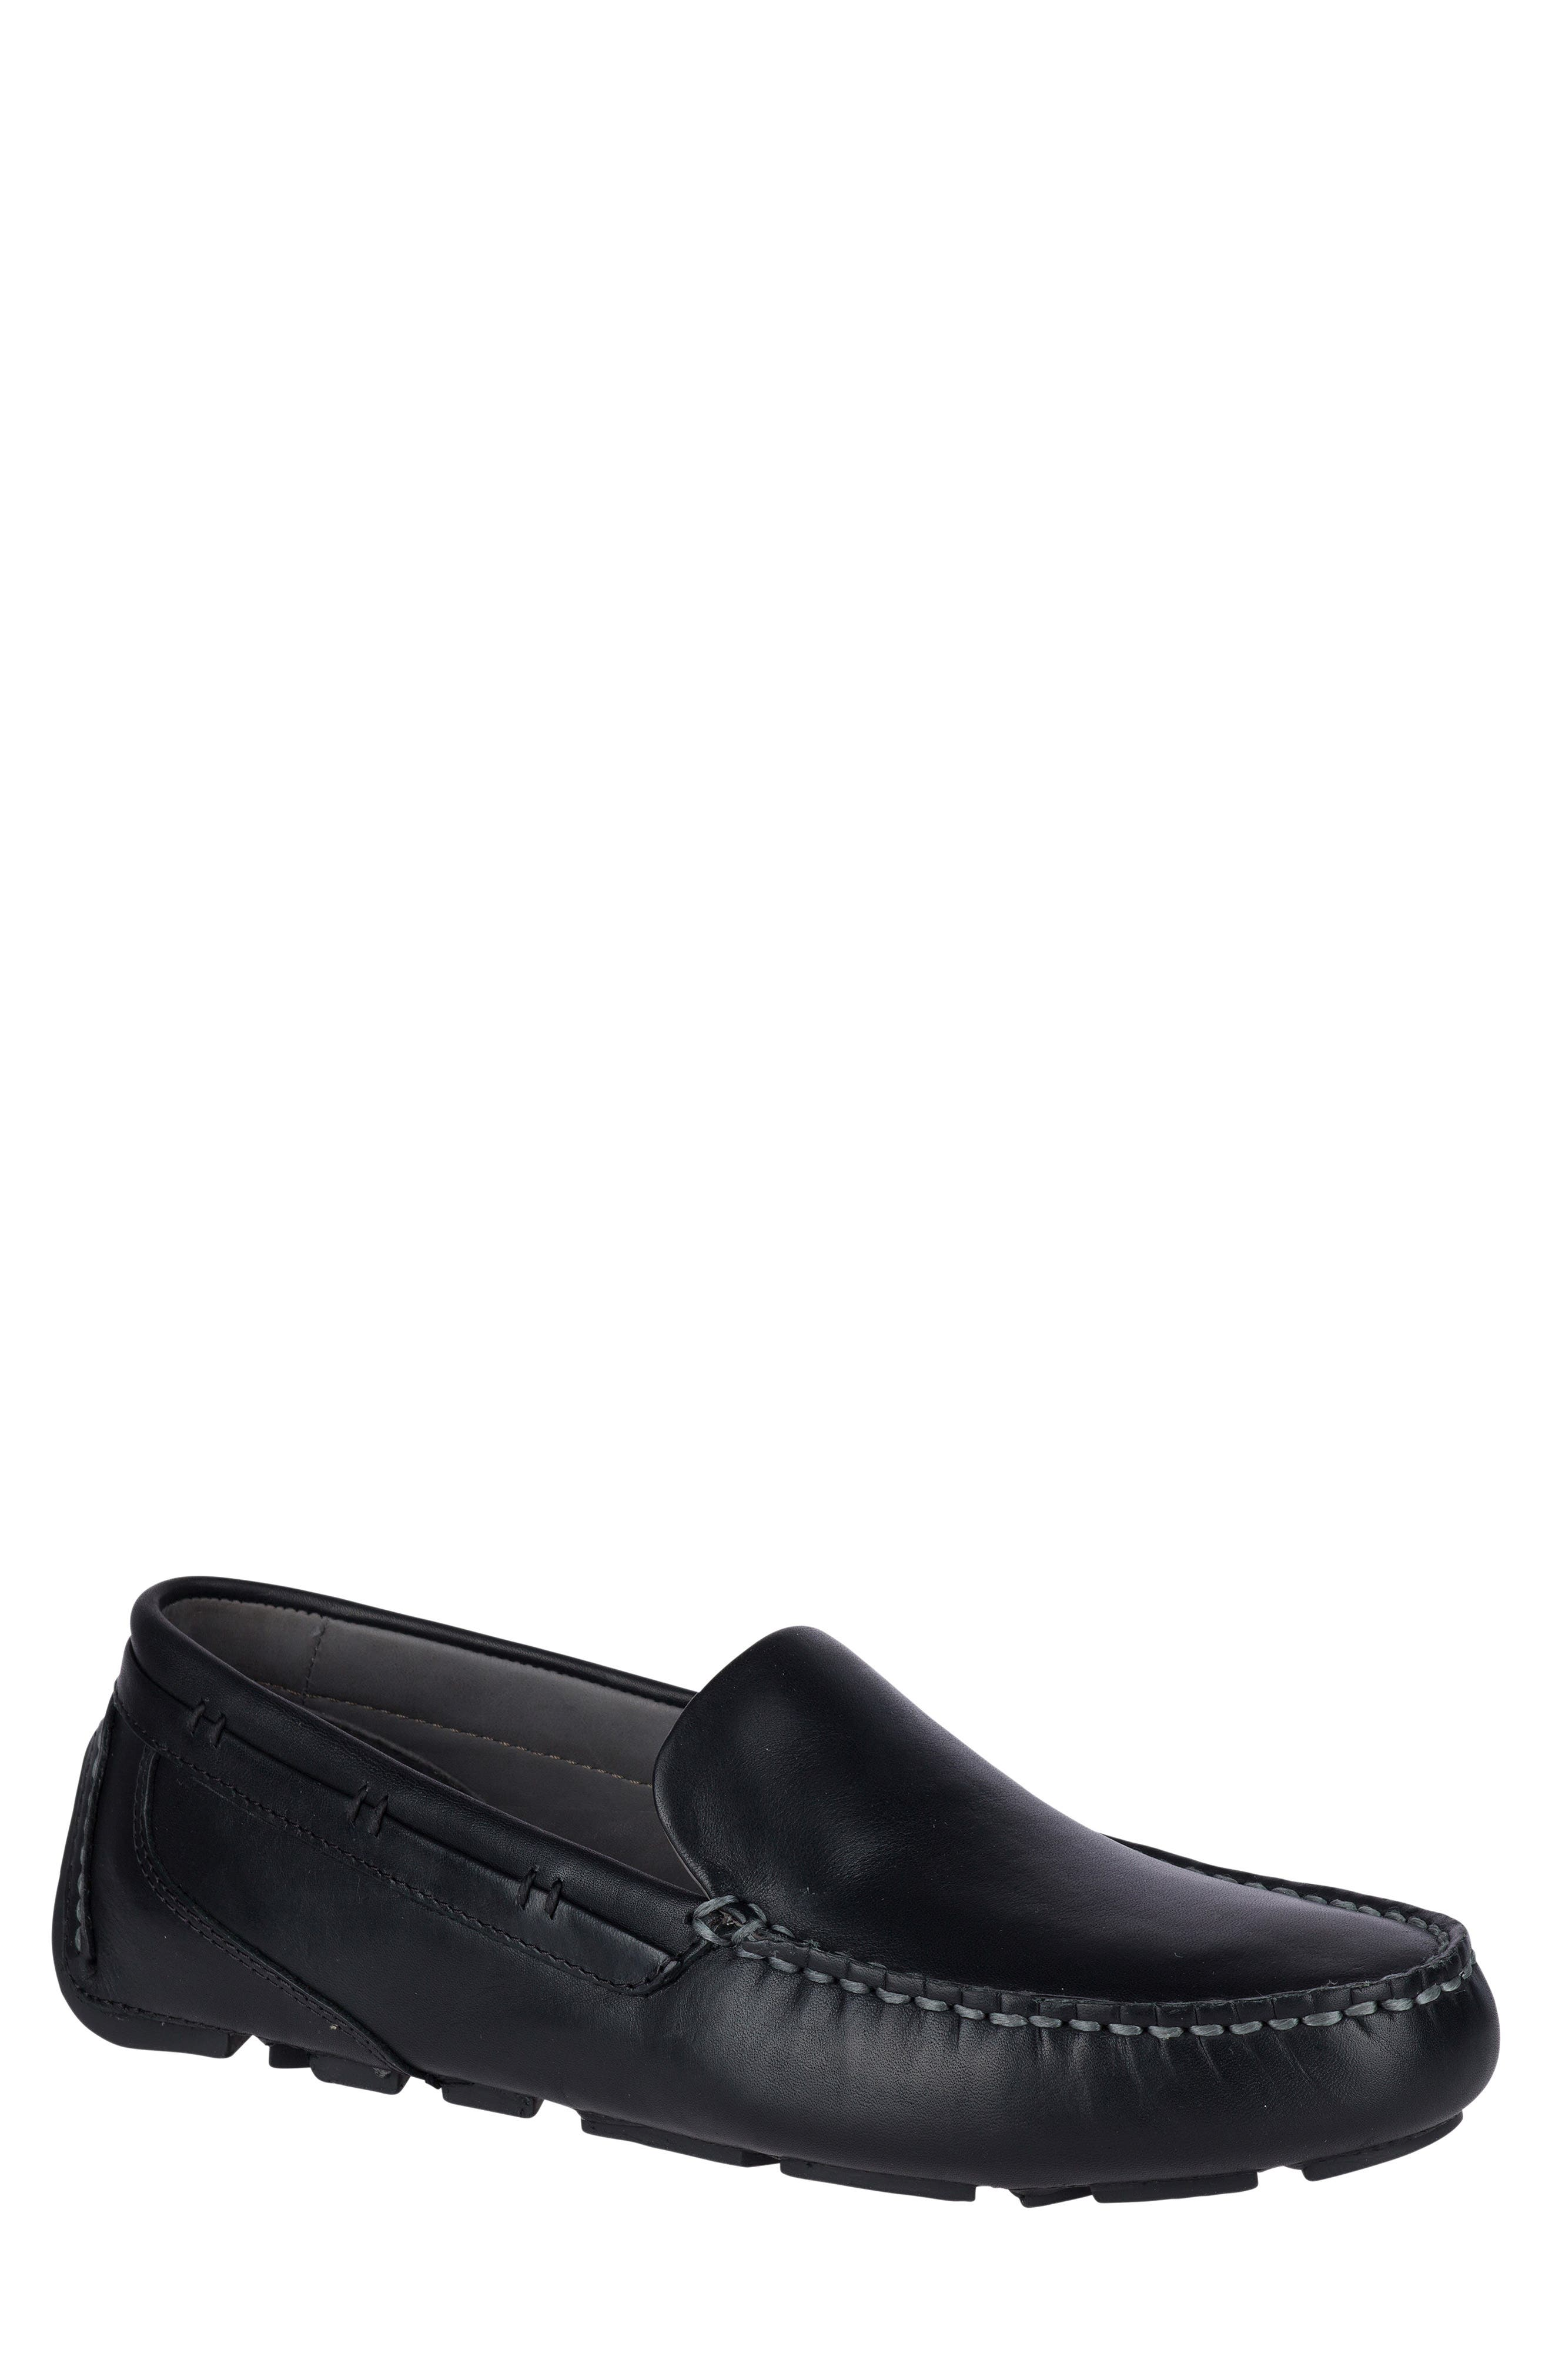 Image of Sperry Gold Cup Harpswell Driving Shoe